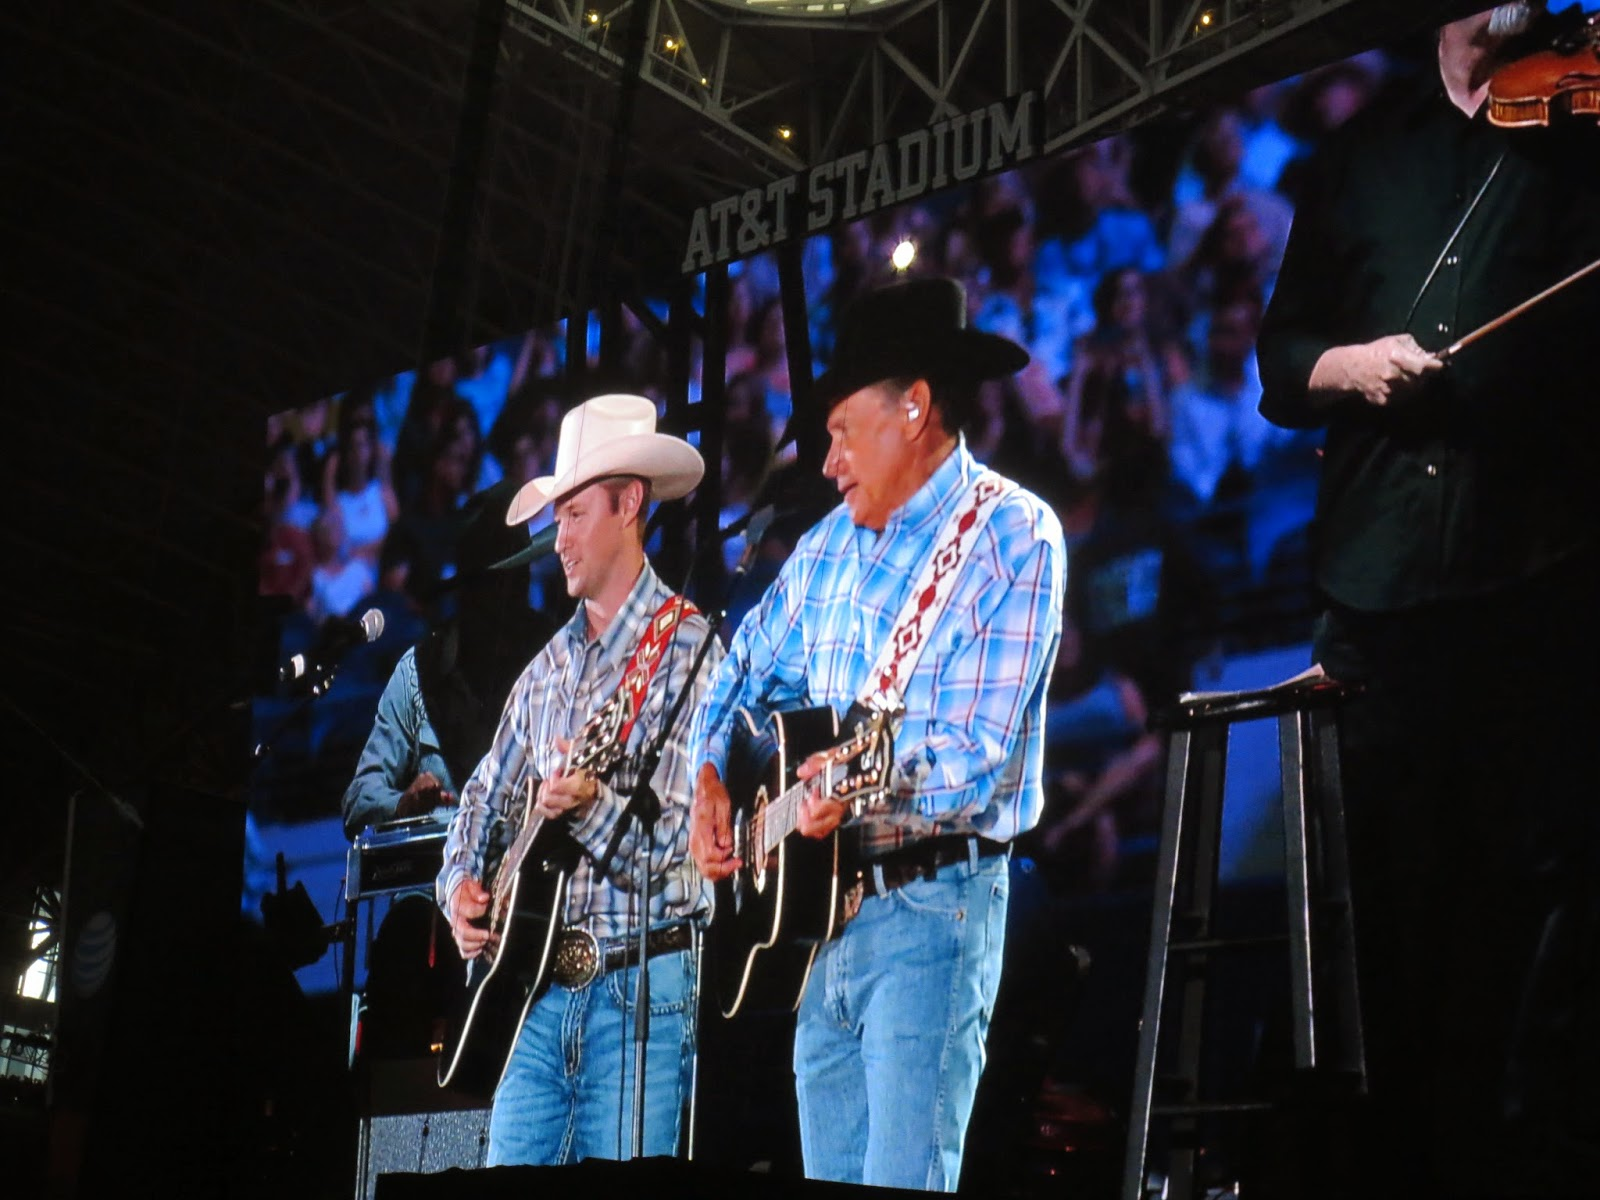 The Cowboy Rides Away tour, Cowboys Stadium